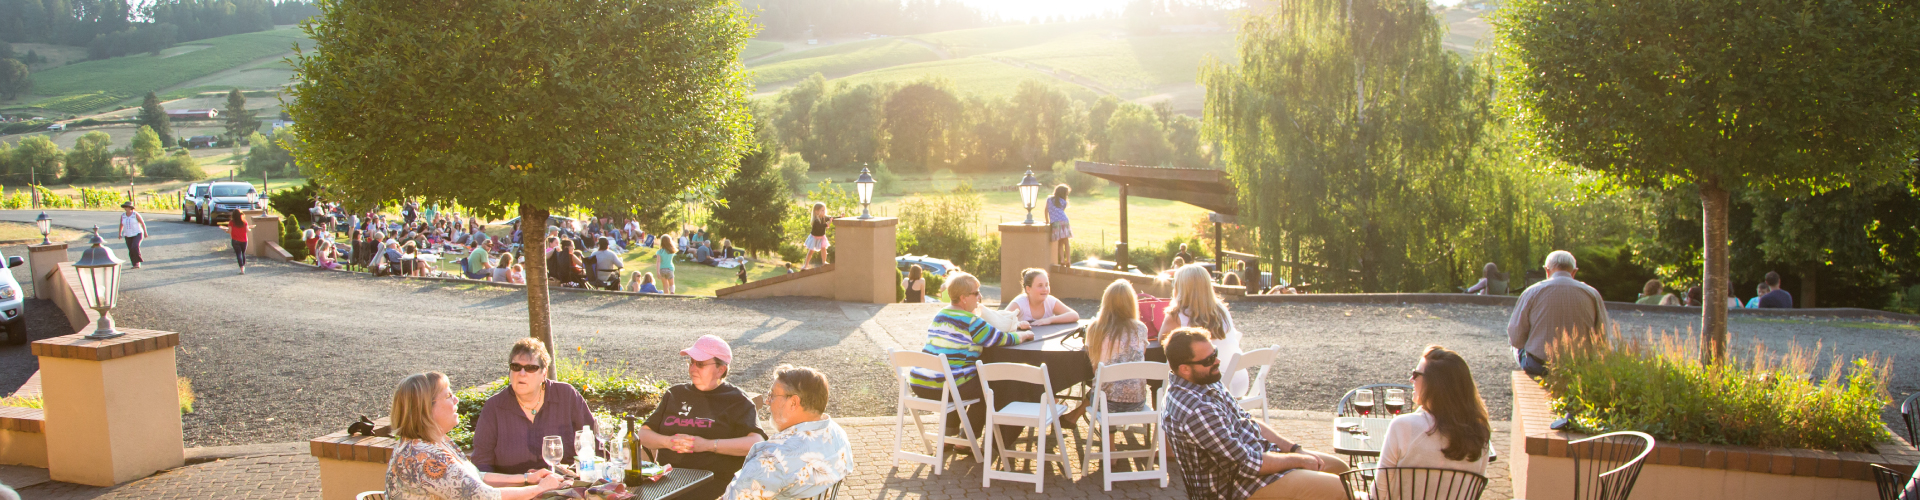 Upcoming Events at Silvan Ridge Winery in Eugene, Oregon